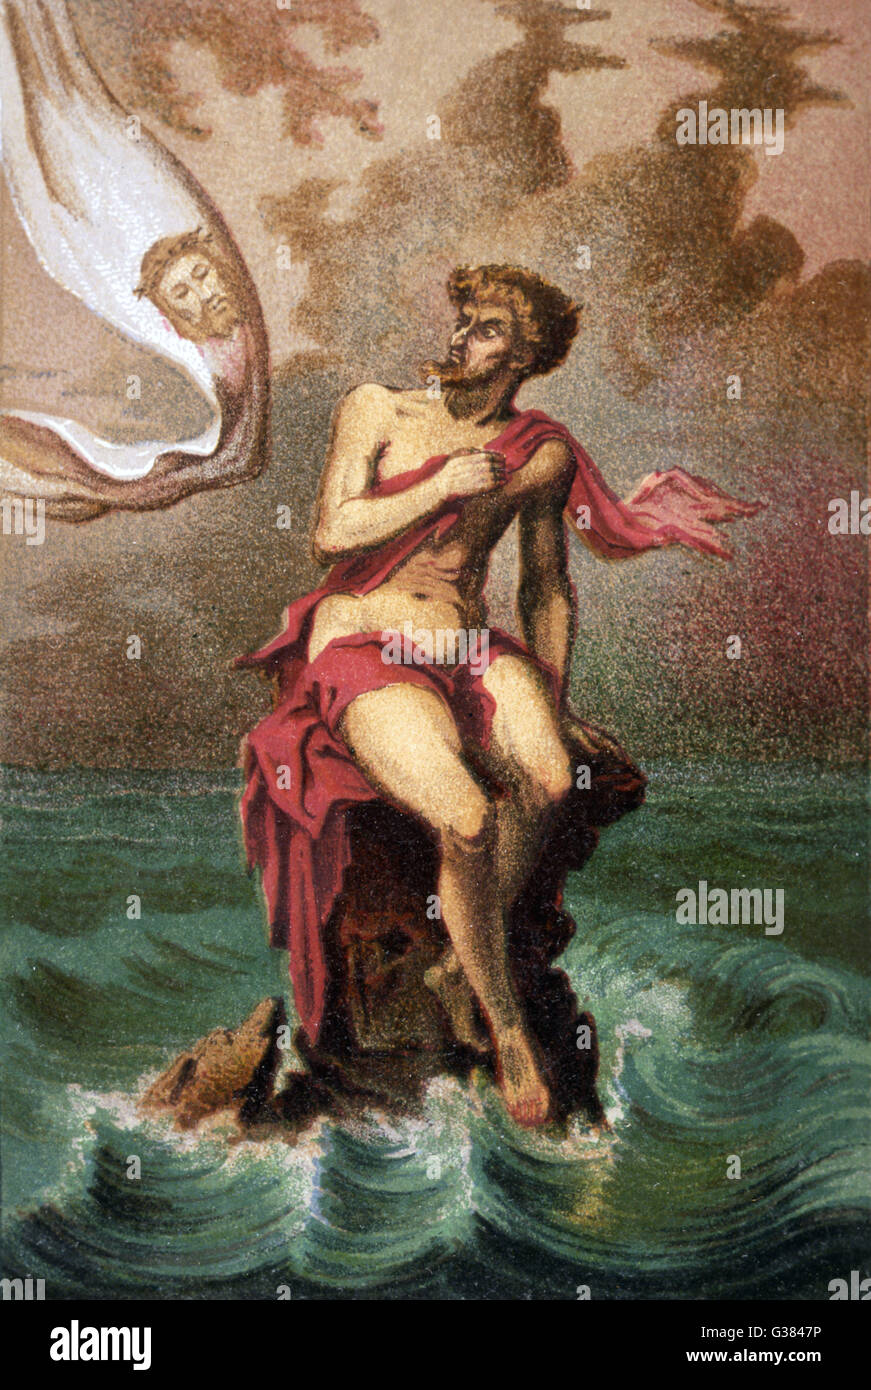 Saint Brendan, sailing  westward, comes across Judas,  condemned to spend eternity on  a mid-Atlantic rock, where - Stock Image